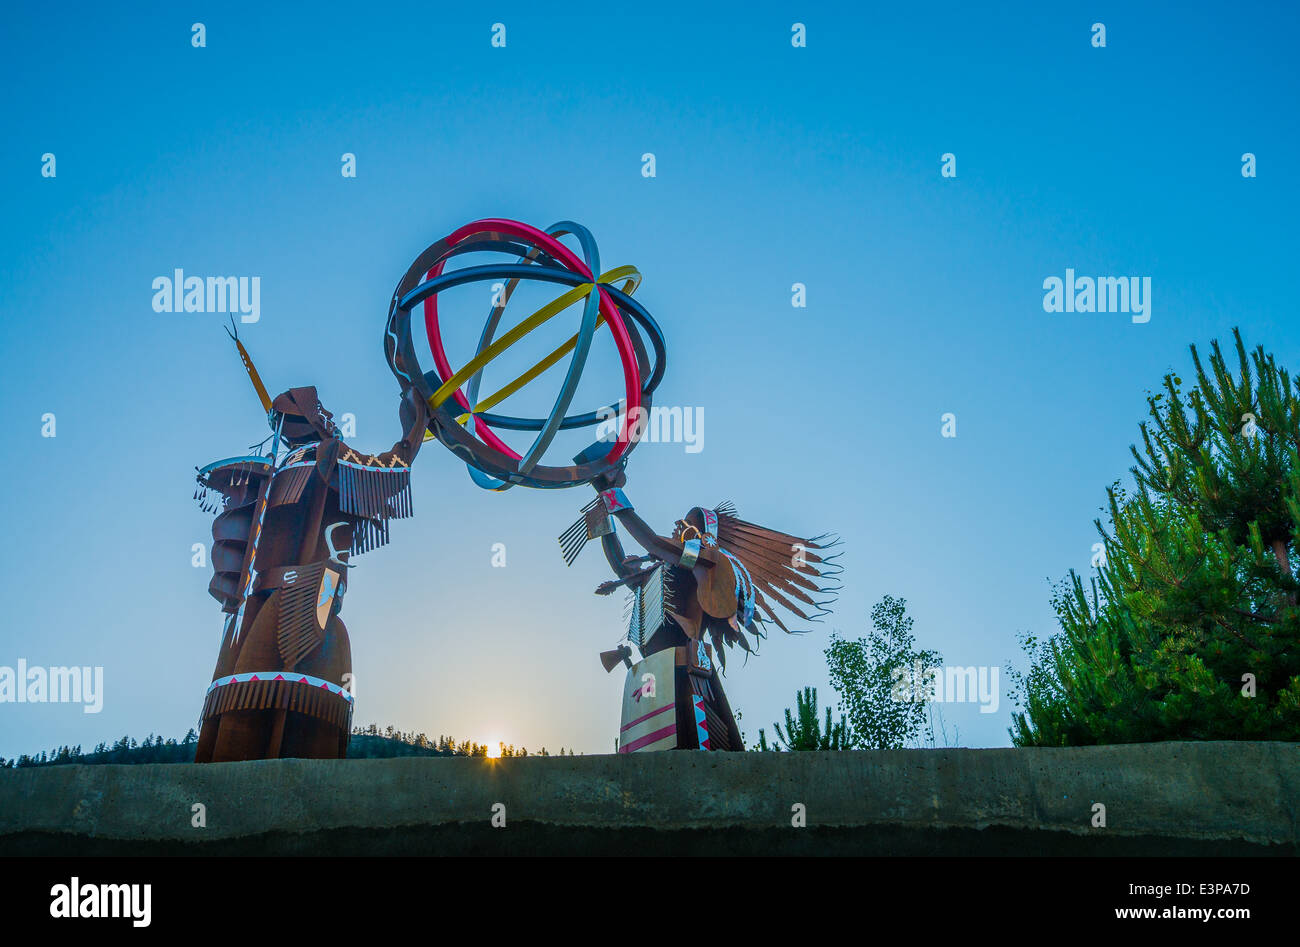 First Nations themed sculpture, by artist Smoker Marchand, Senkulmen Business Park, Oliver, BC, Canada - Stock Image